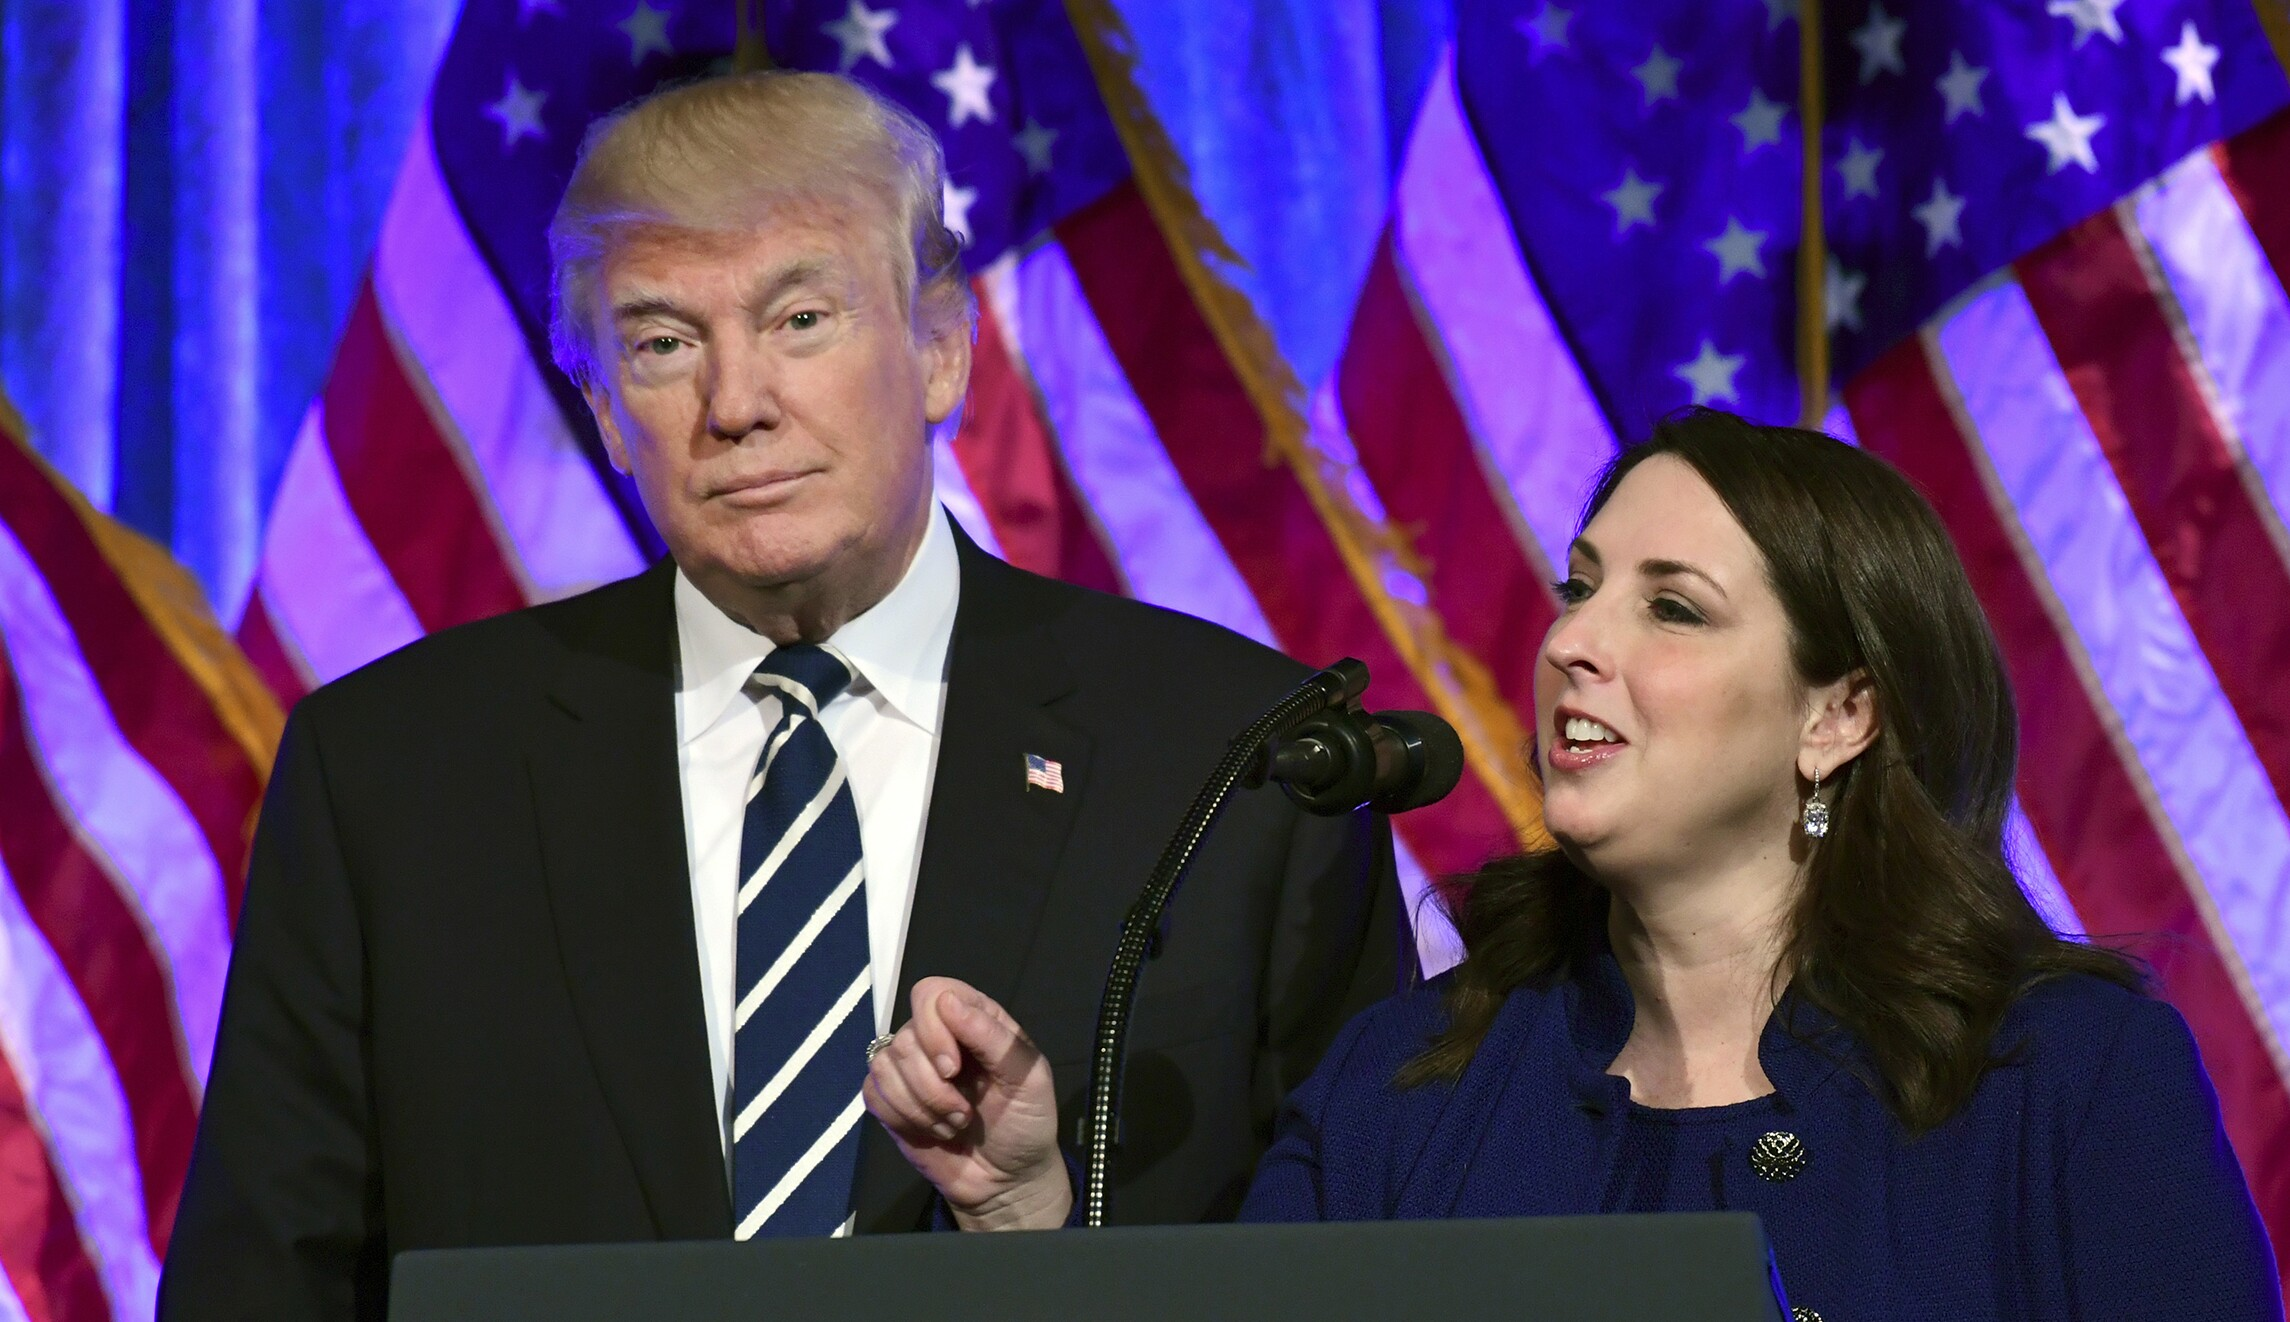 Trump asks Ronna McDaniel to stay for second term at RNC helm